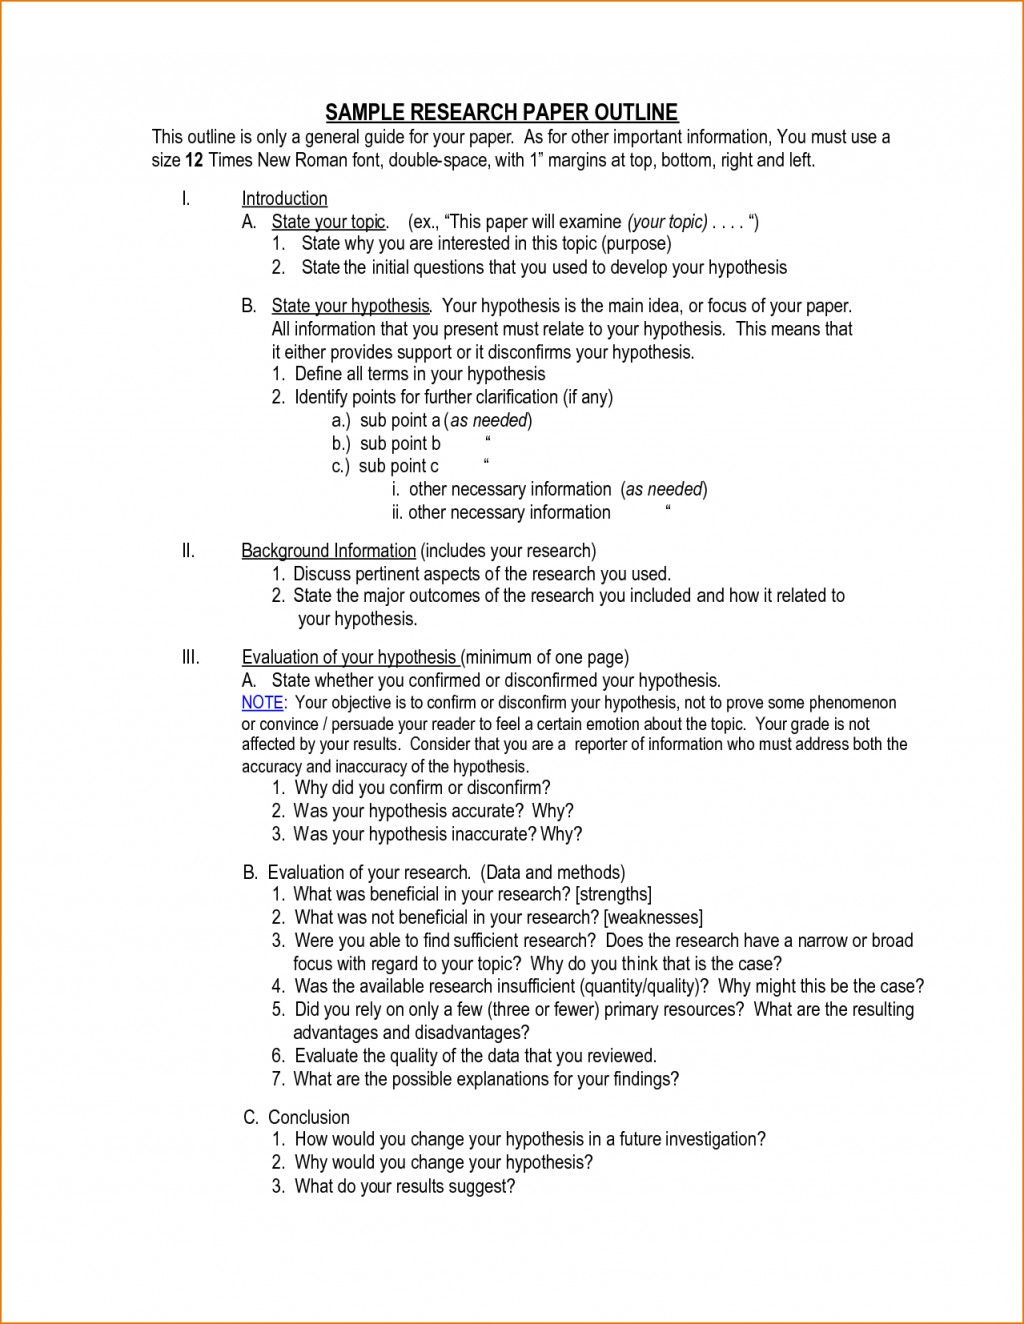 012 Research Paper Outline Template For Outlines Top A Mla On Social Media Large